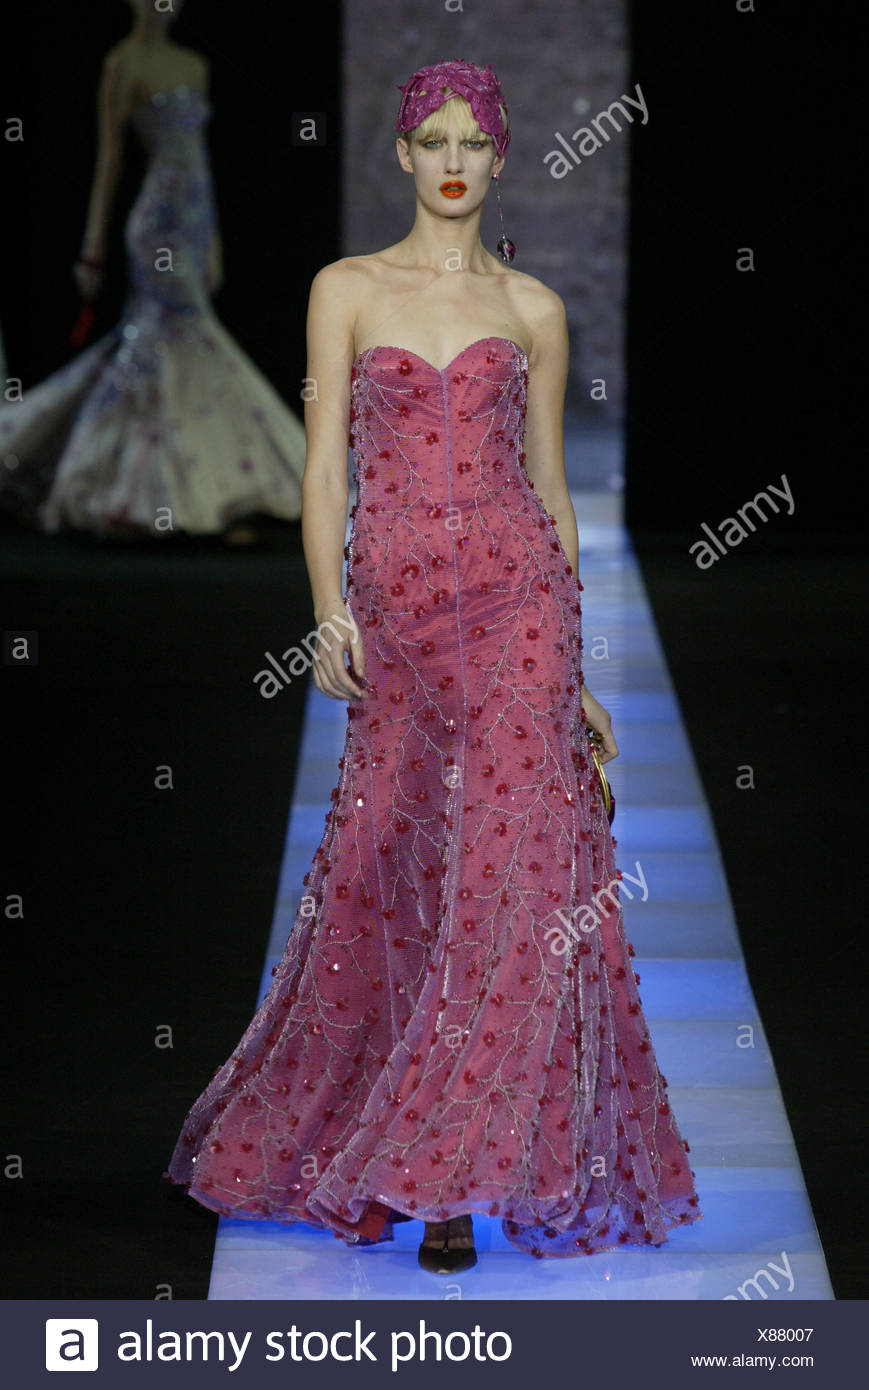 Pink Feather Evening Gown Stock Photos & Pink Feather Evening Gown ...